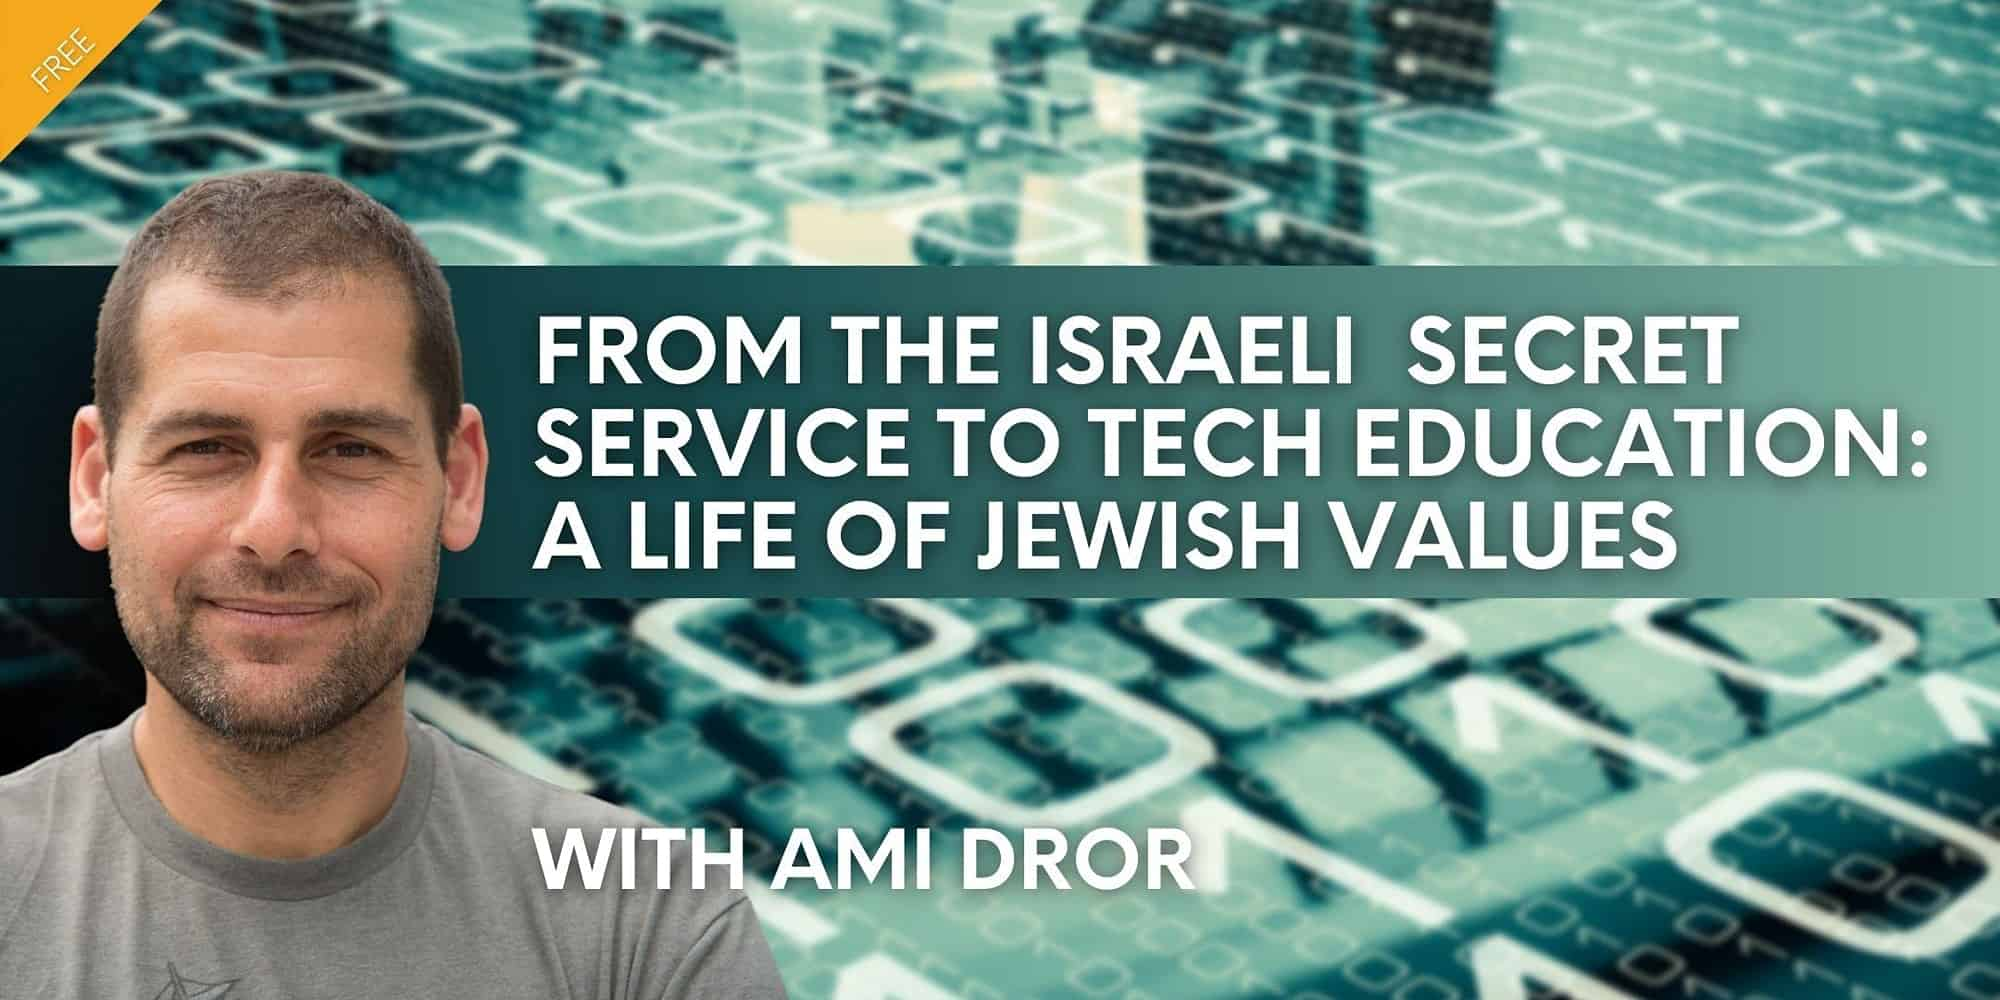 From the Israeli Secret Service to Tech Education: A Life of Jewish Values